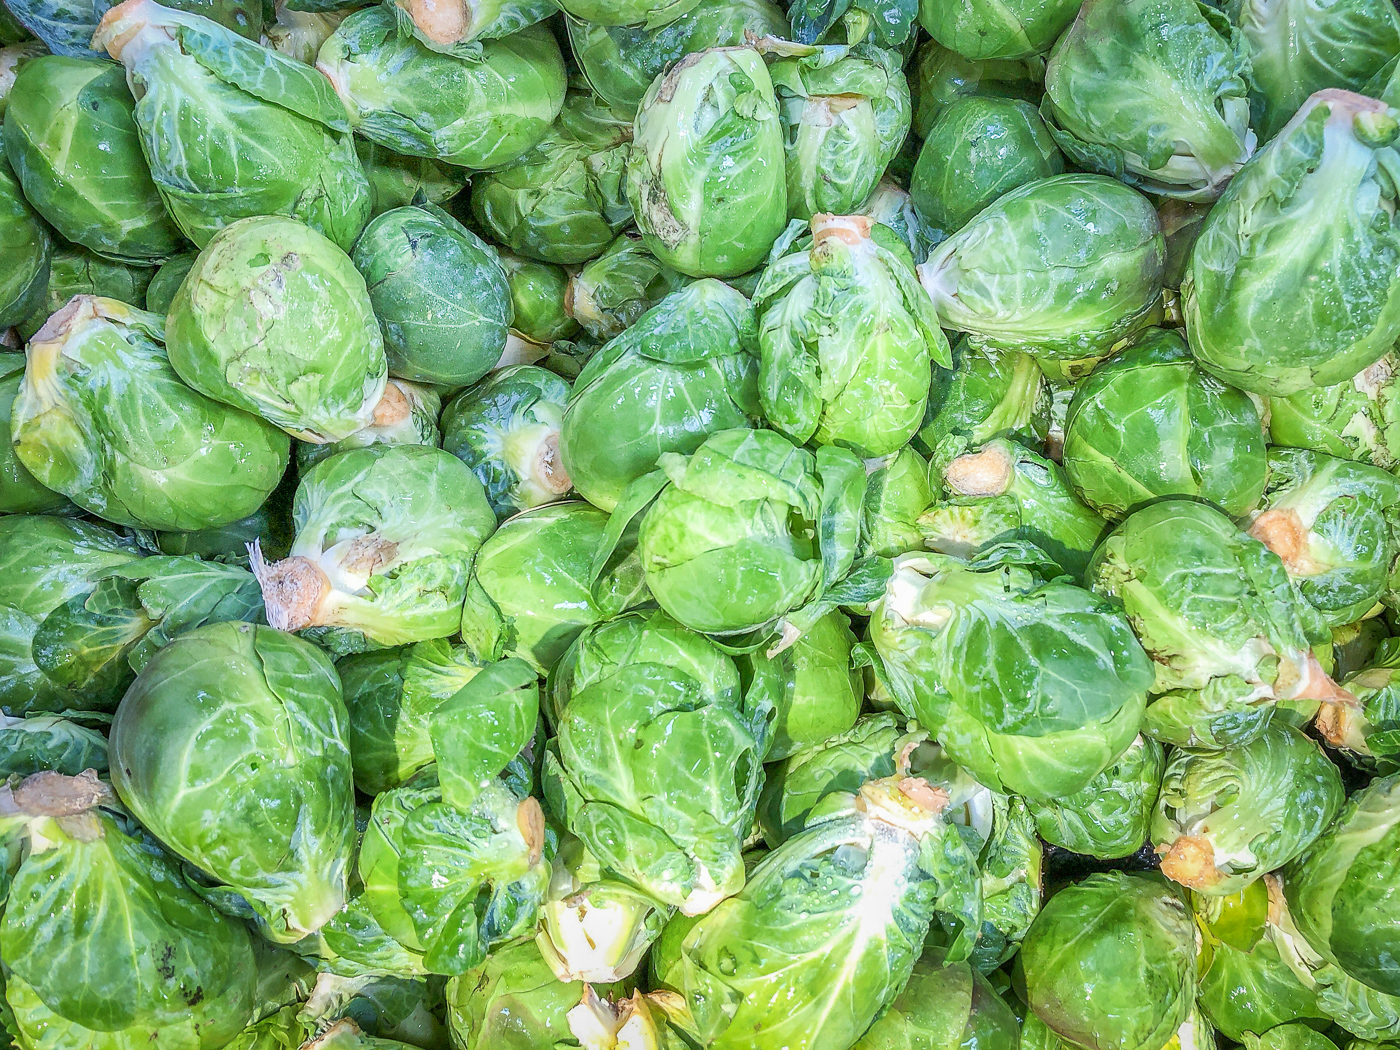 Close up photo of Brussels sprouts